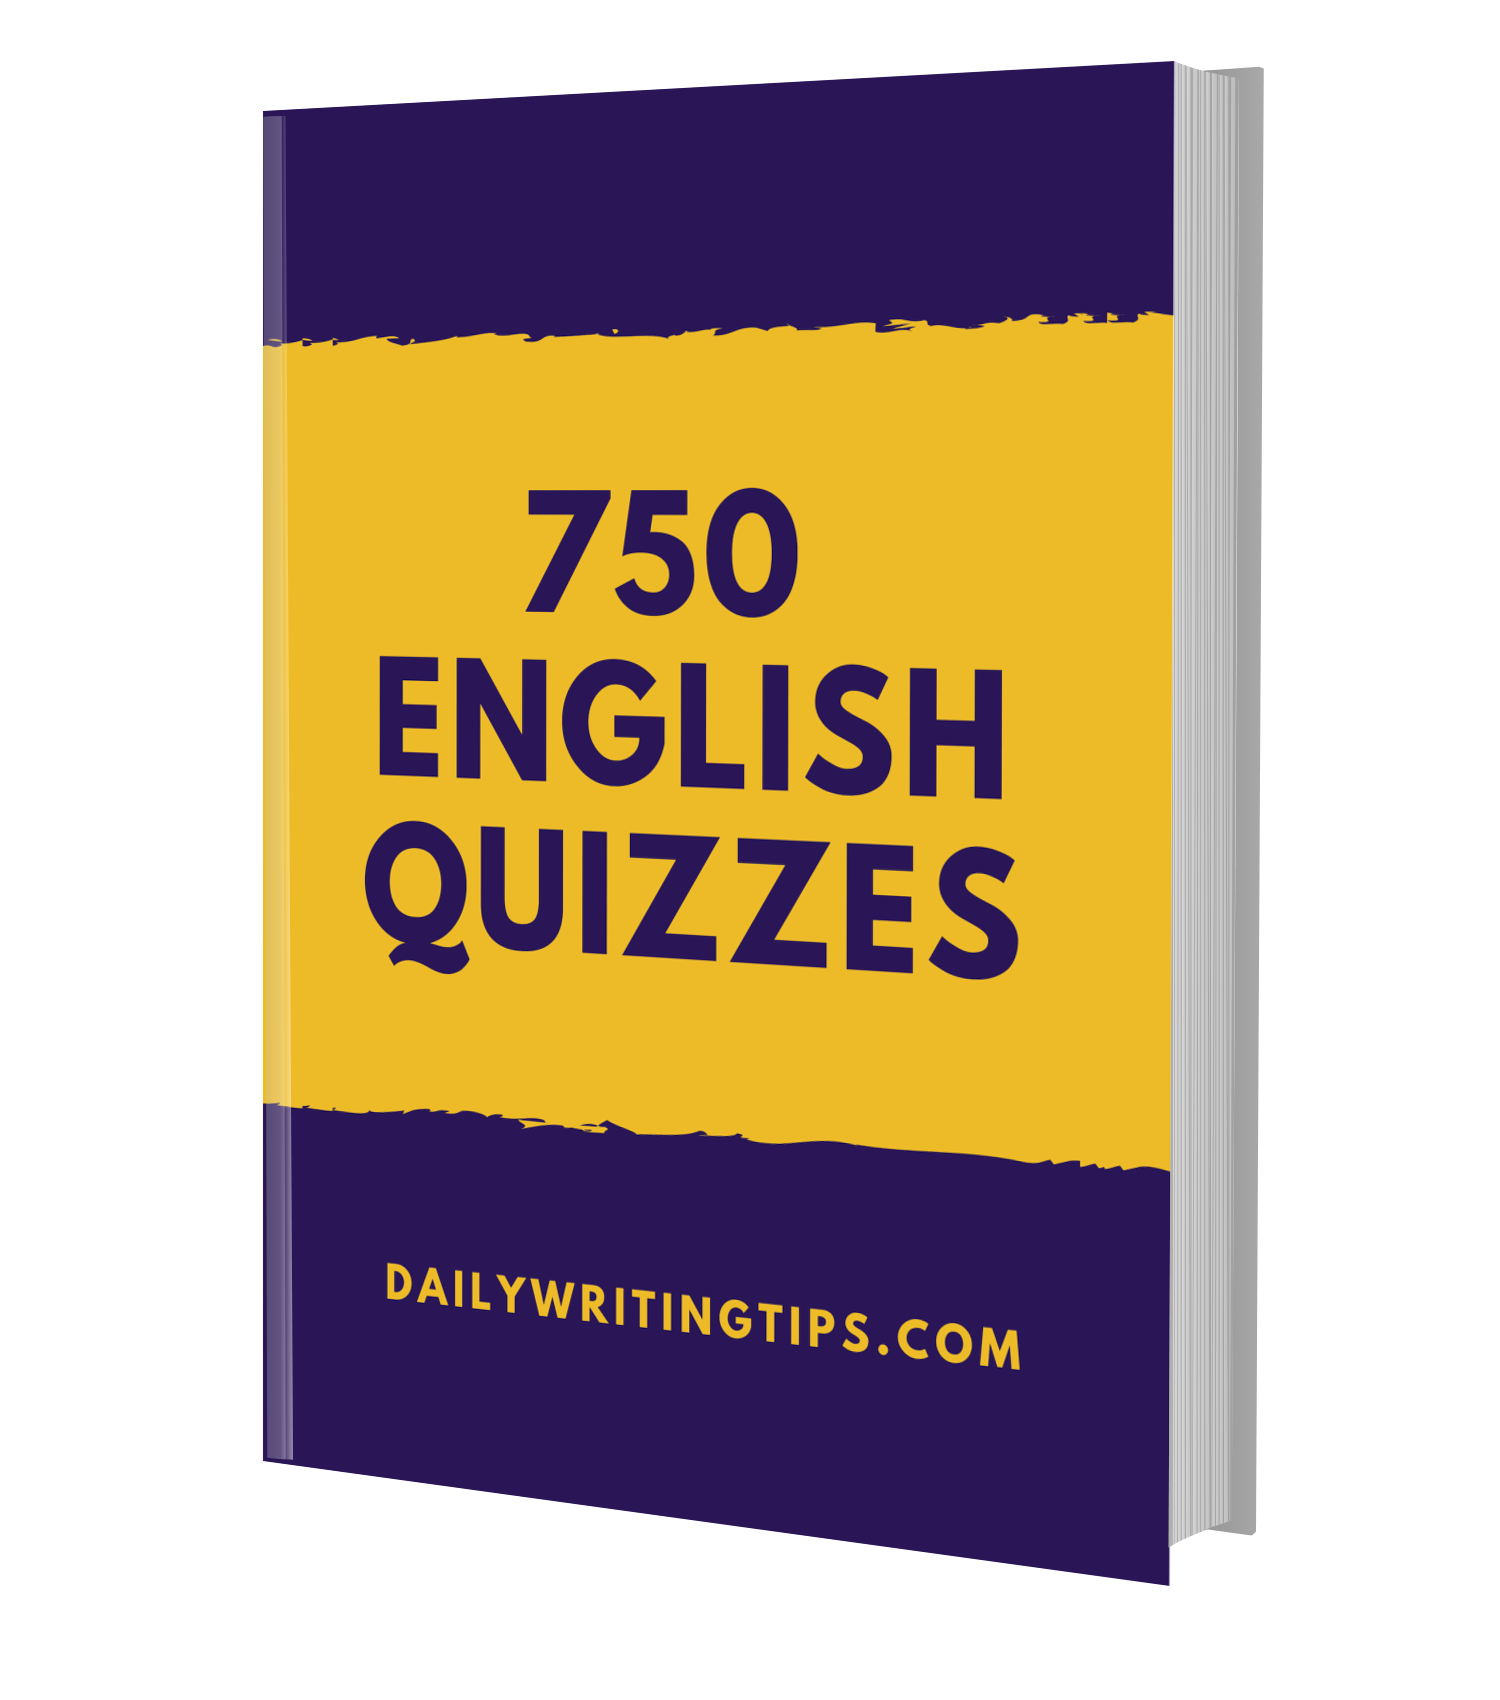 750 English Quizzes eBook - Daily Writing Tips